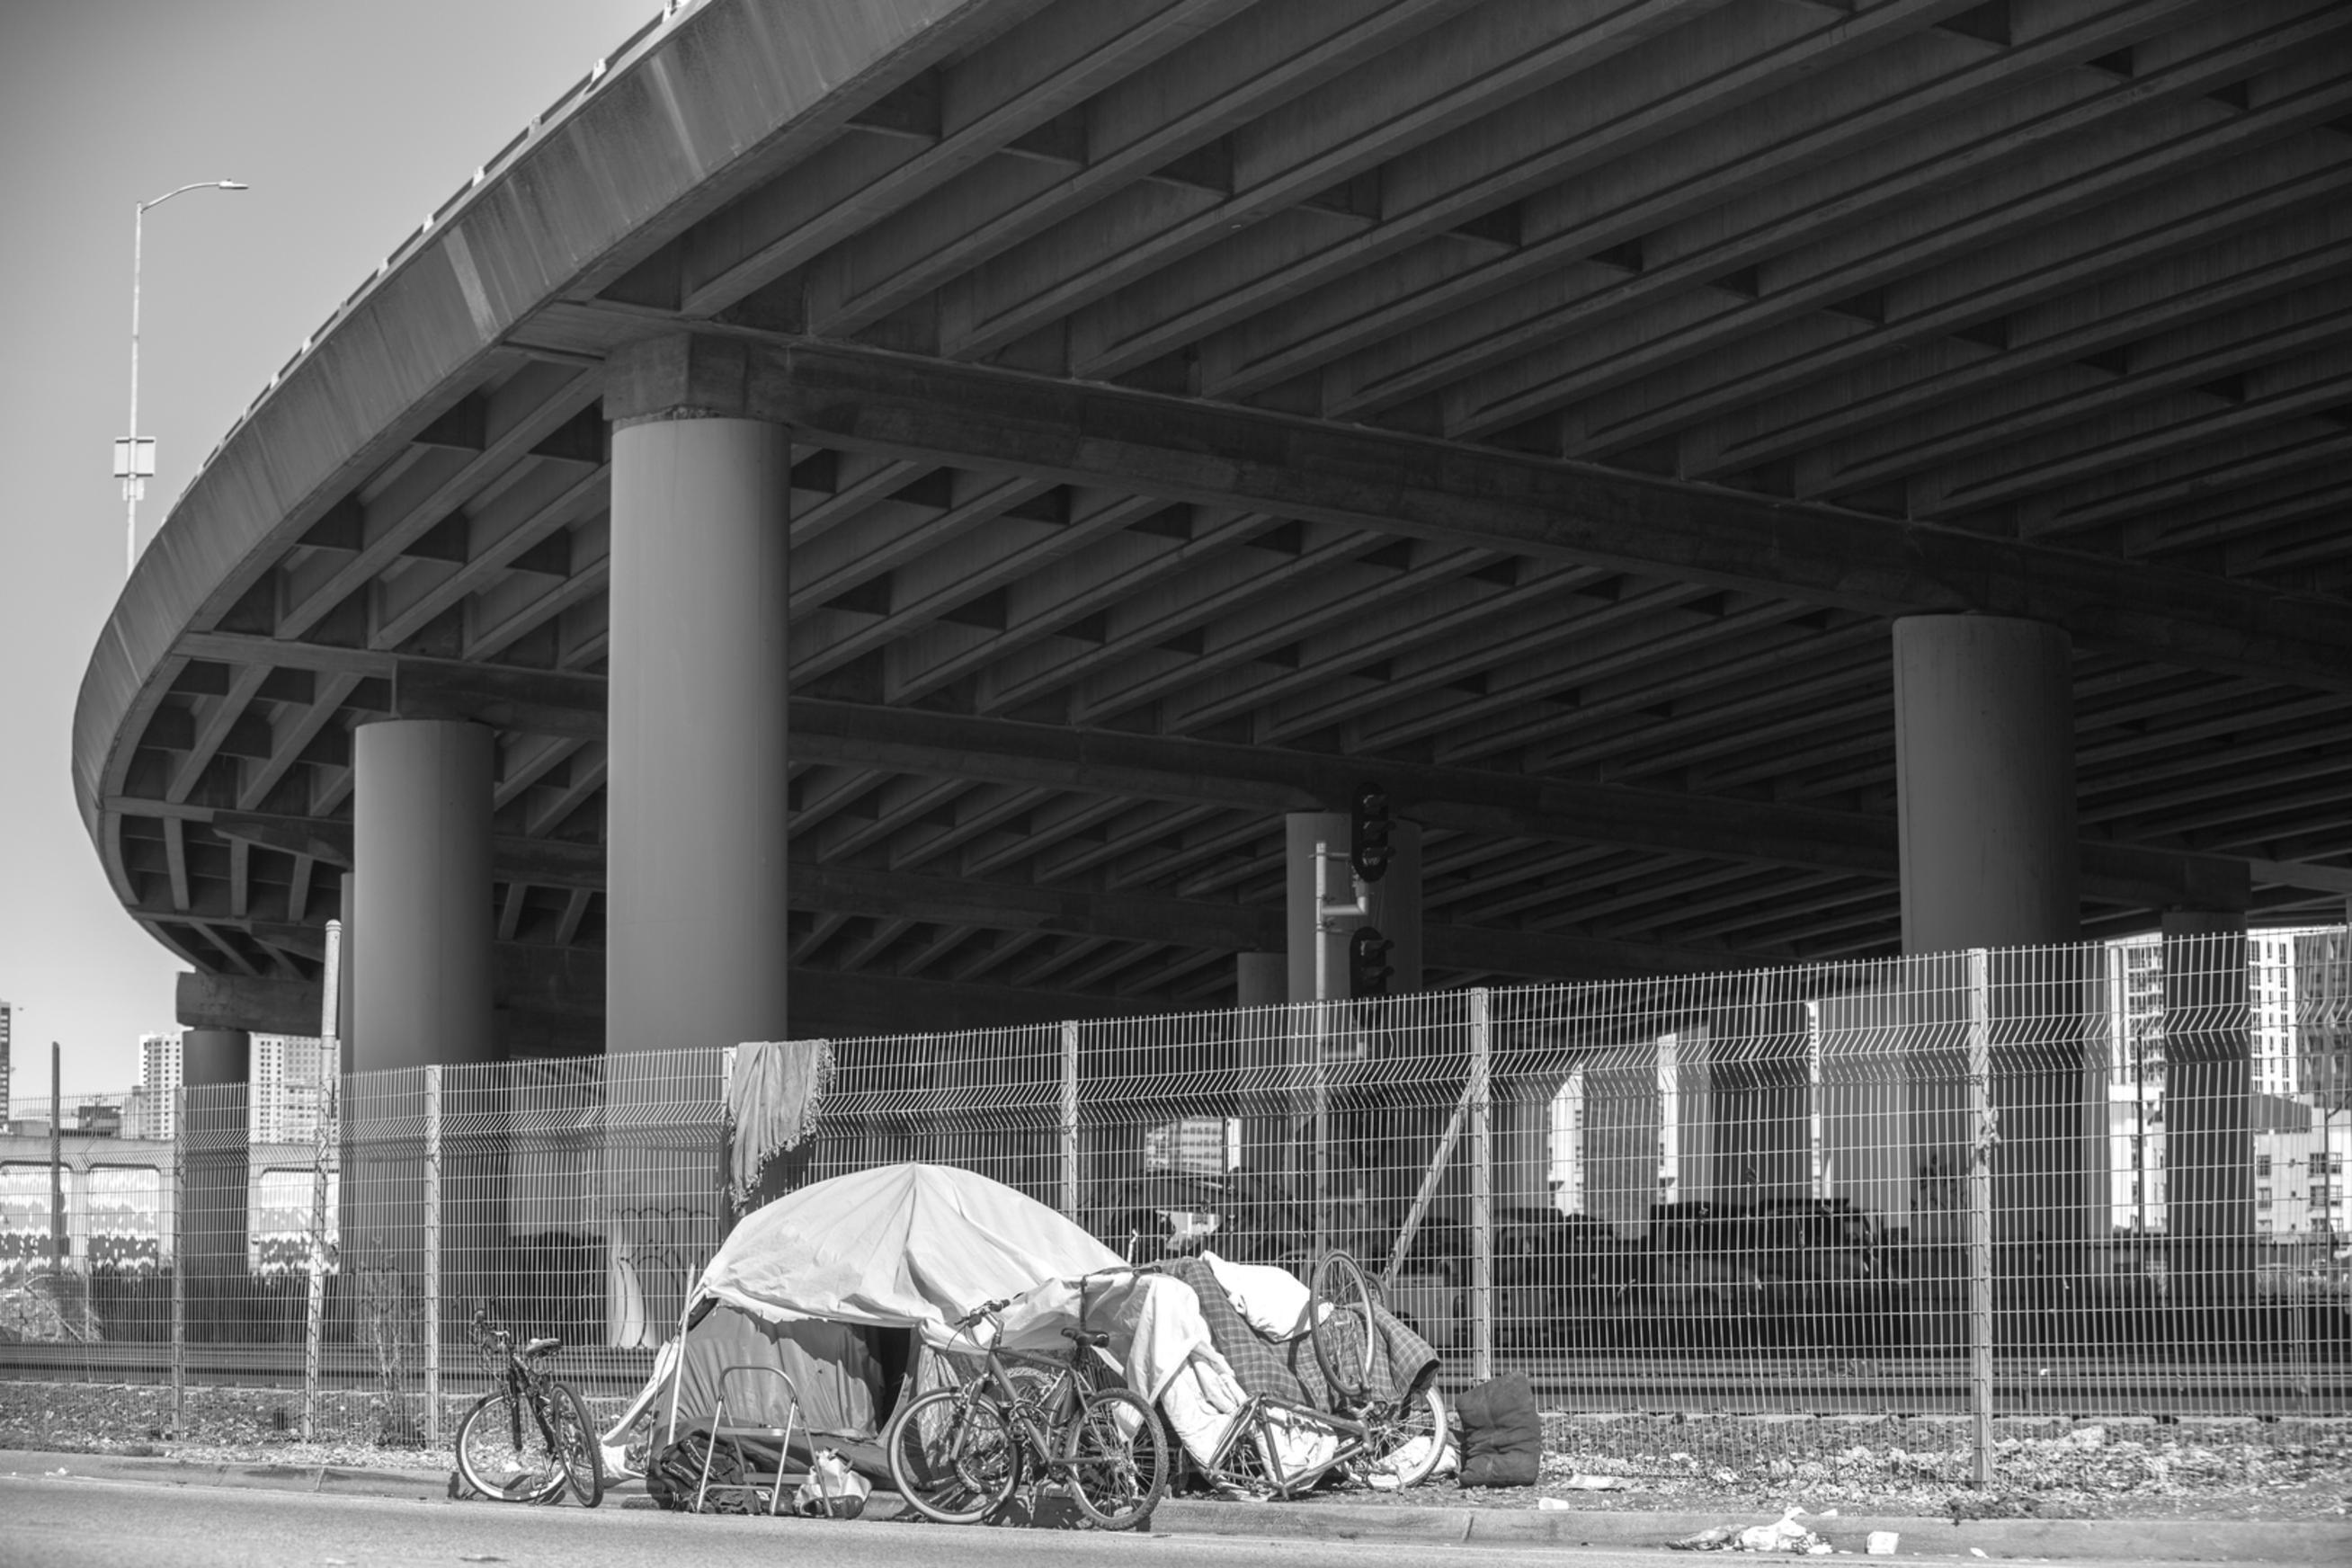 bay area homeless living situation portrait